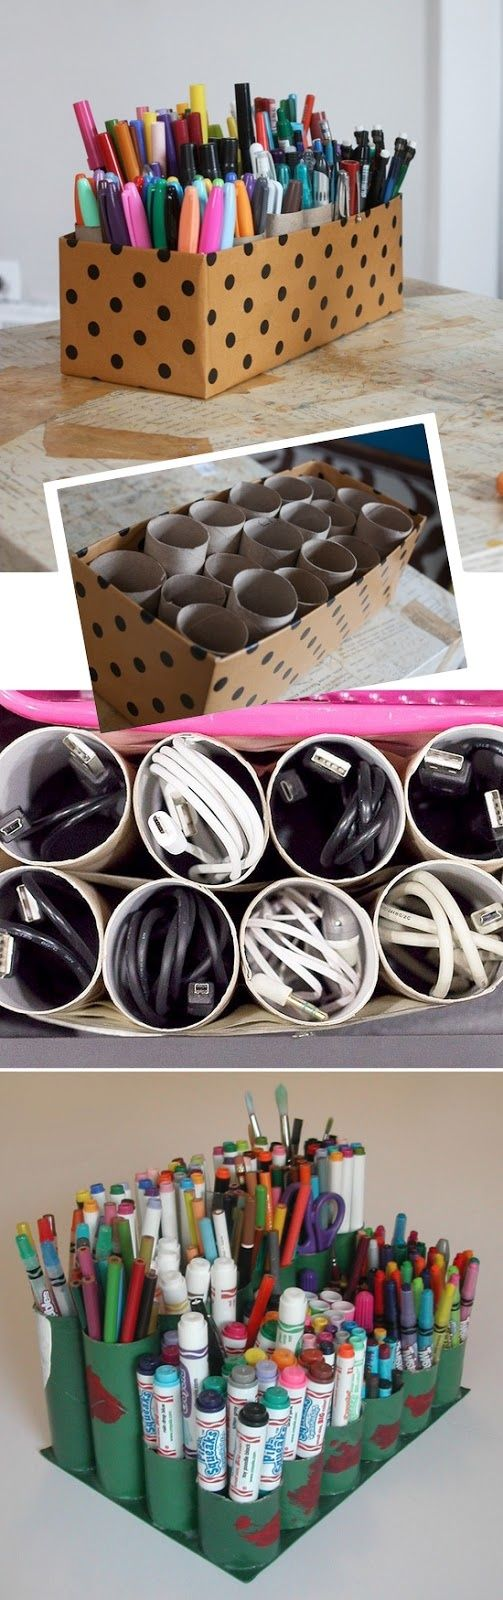 Toilet Paper Roll Storage Ideas...very handy for being neat and organized, even when desk drawer space is limited